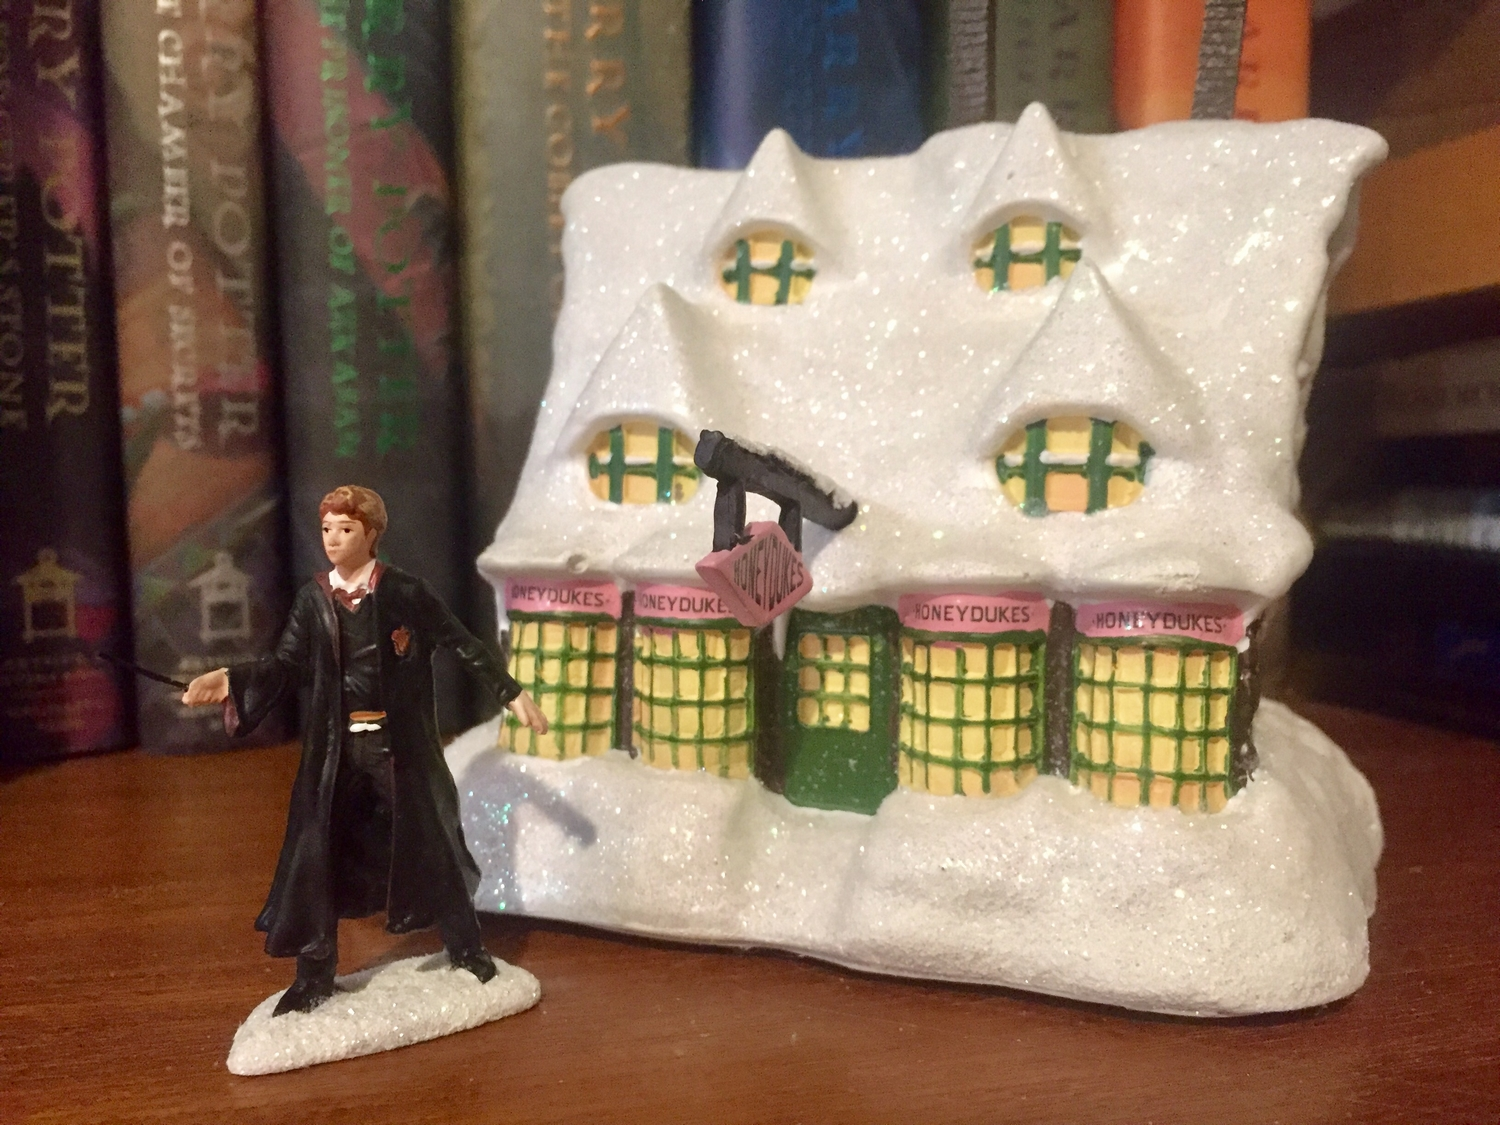 """HONEYDUKES™"" Sweet Shop and ""RON WEASLEY™"" displayed in front of the hardback ""Harry Potter"" books"